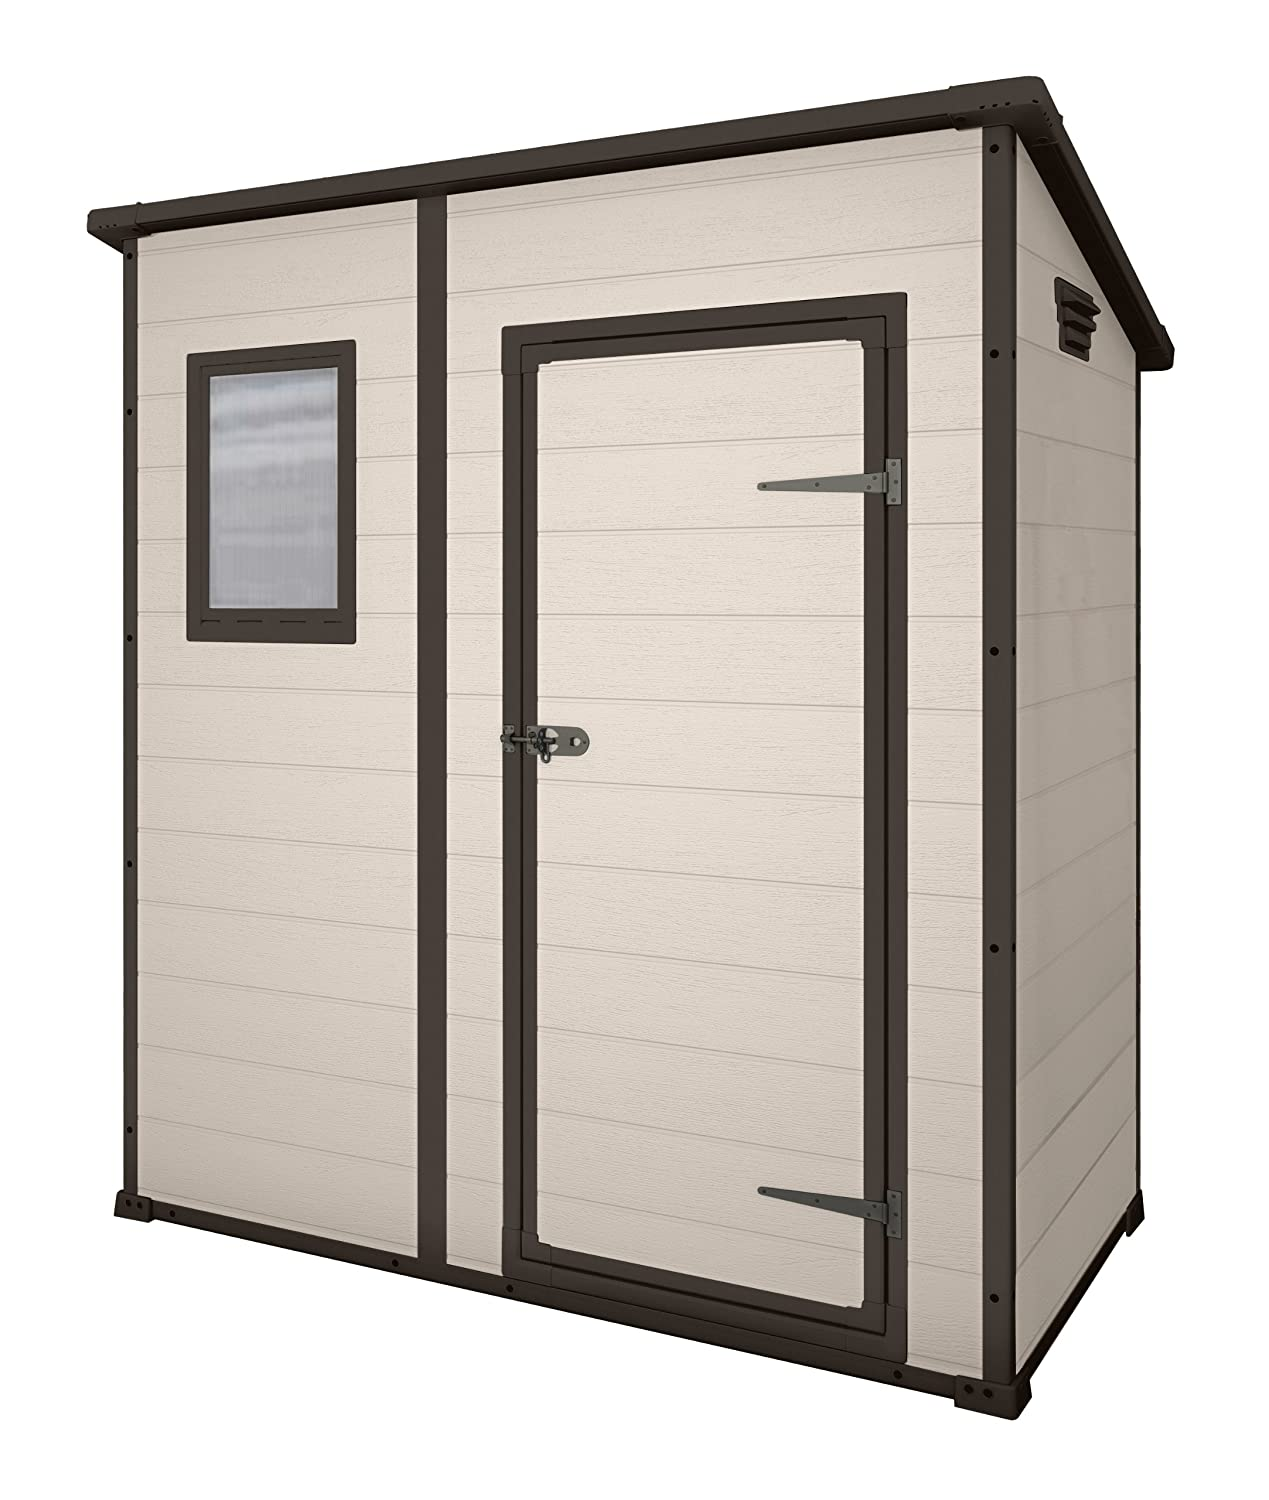 keter manor pent outdoor plastic garden storage shed 6 x 4 feet large beige amazoncouk garden outdoors shire 6ft x 4ft - Garden Sheds 6ft By 4ft